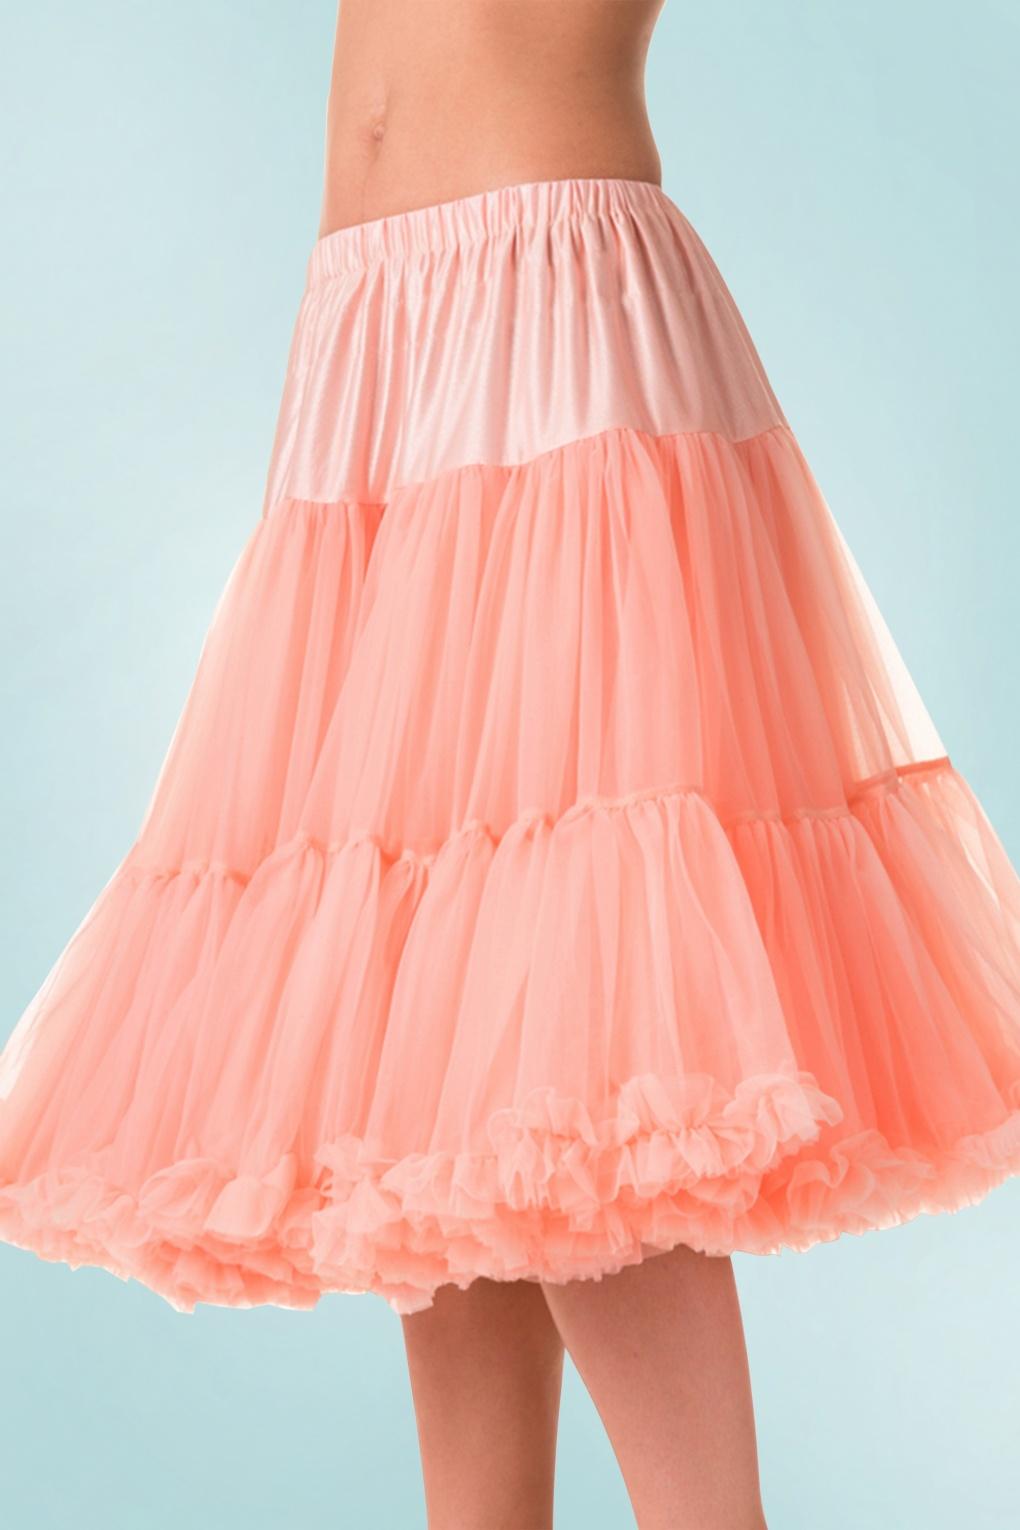 Vintage Inspired Lingerie 50s Lola Lifeforms Petticoat in Salmon Pink £43.94 AT vintagedancer.com